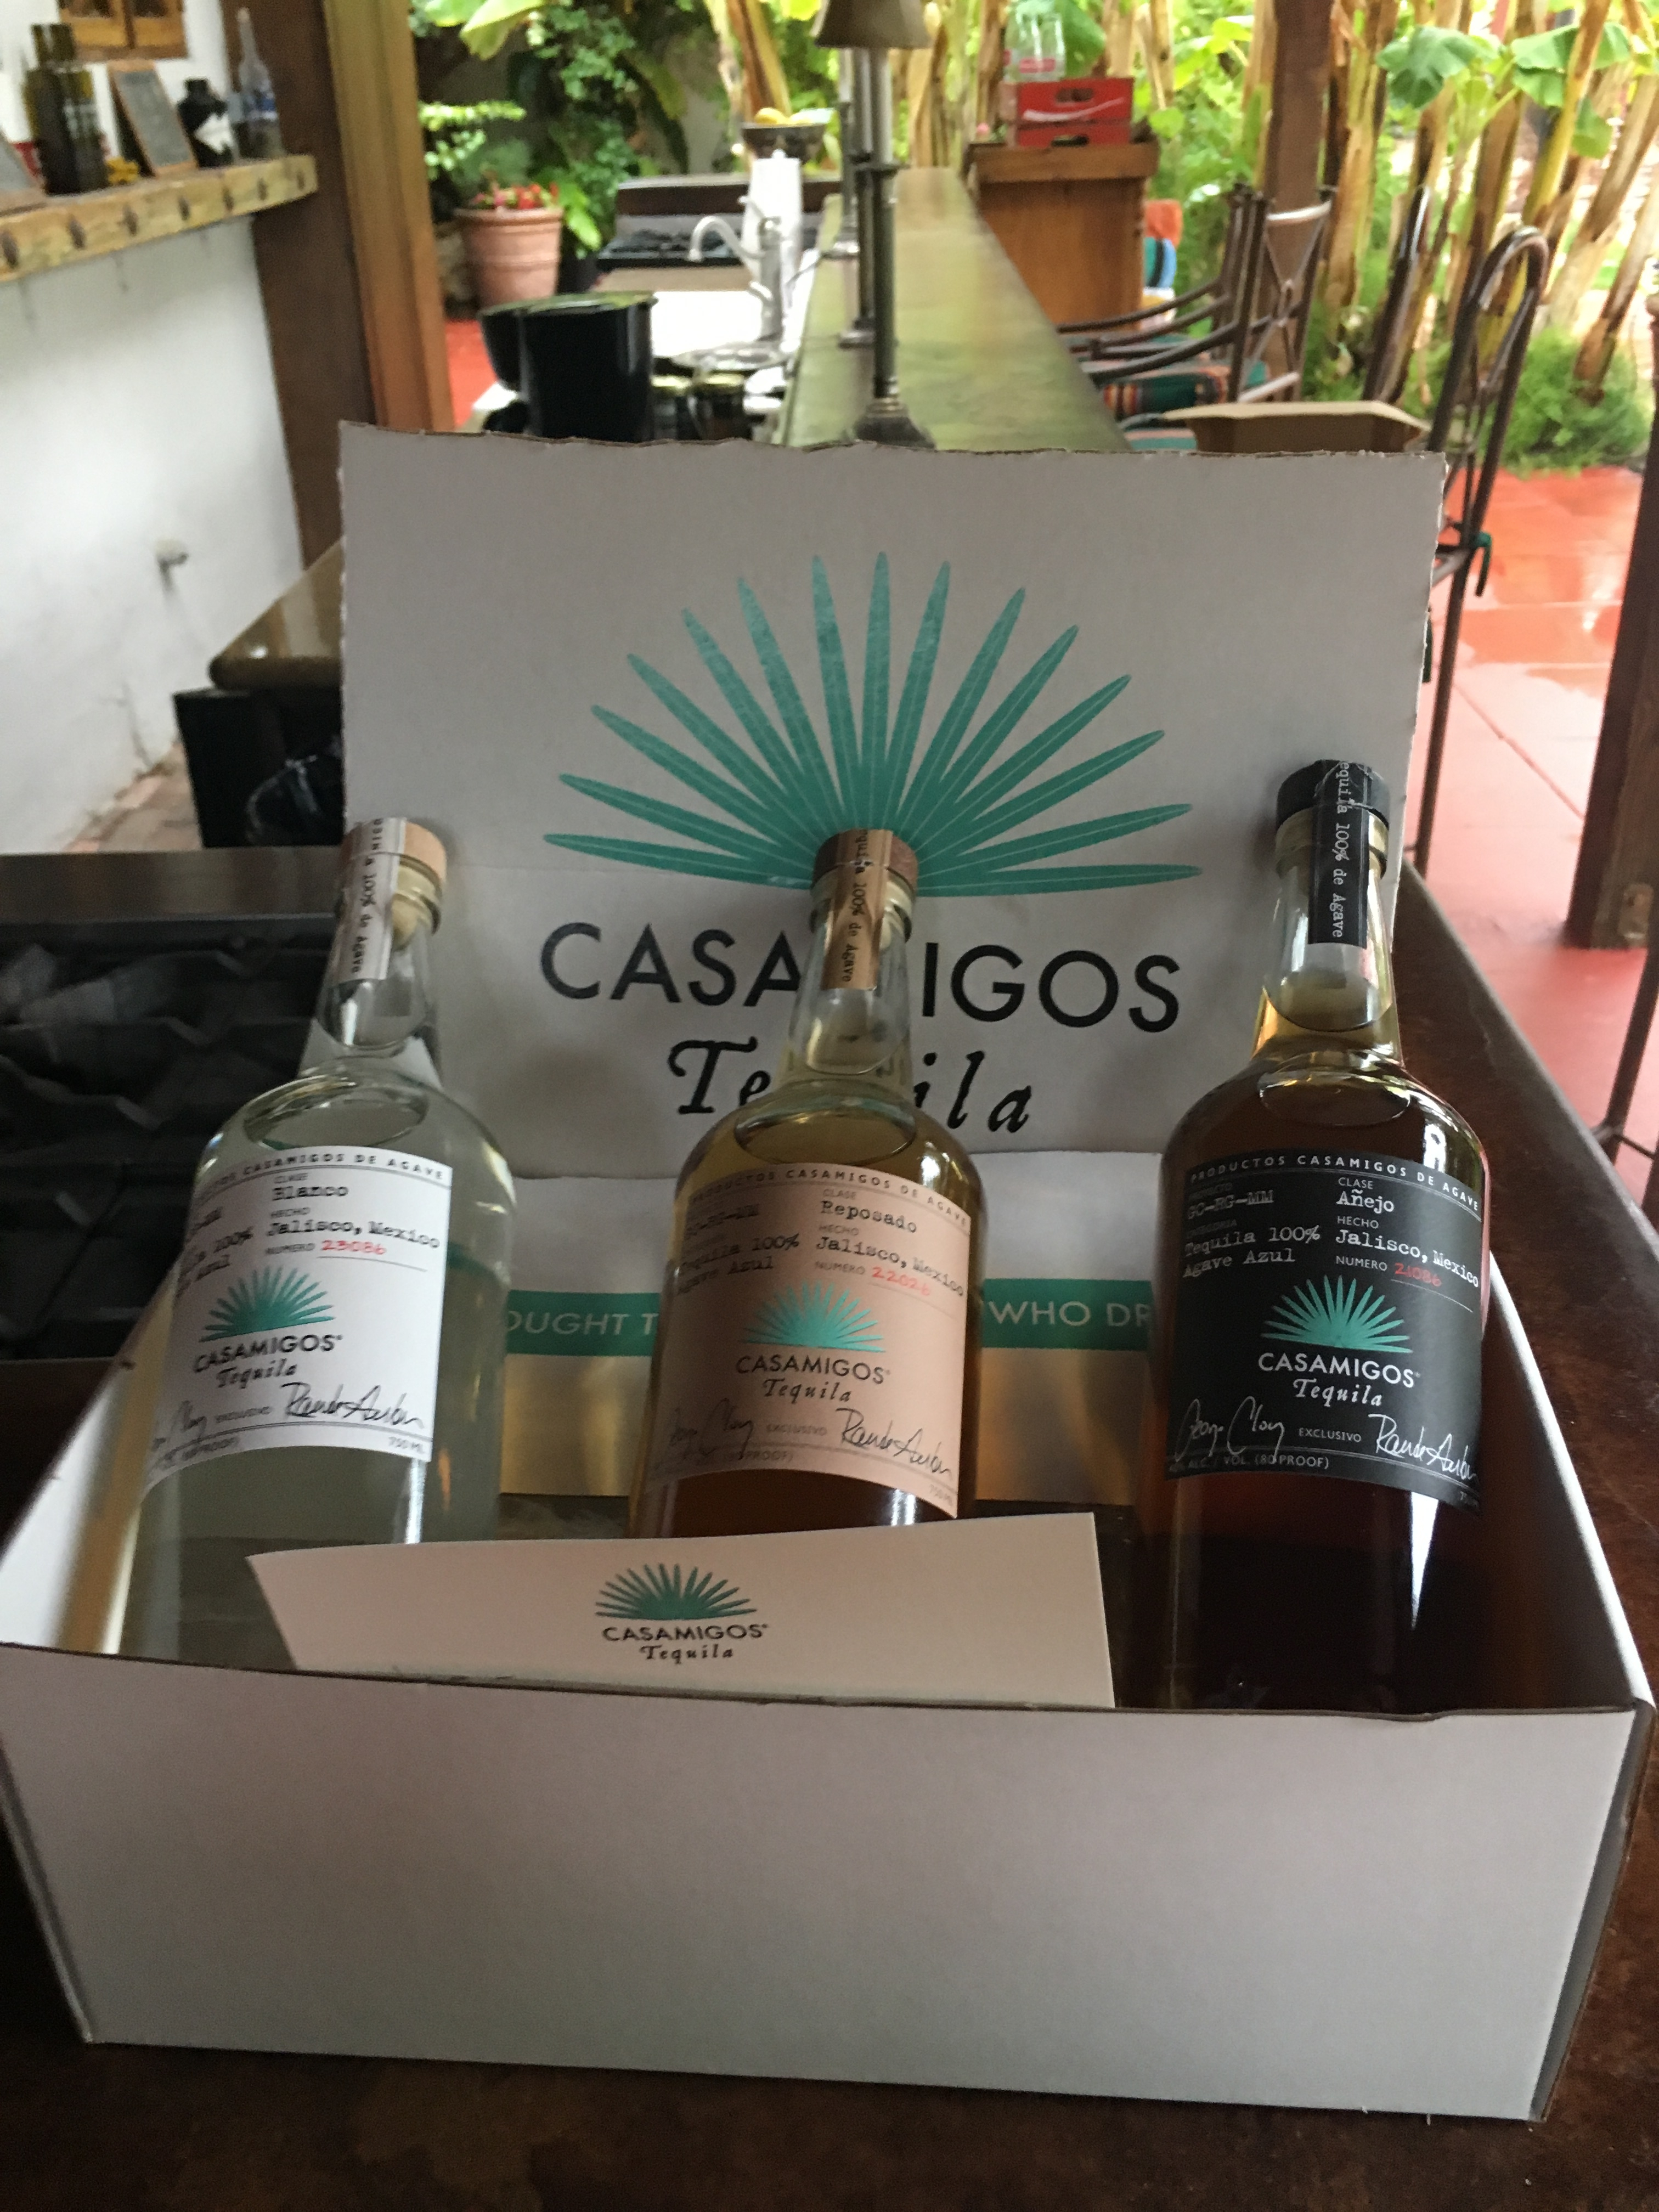 CasaMigos Bottles at Casa de Monte Vista